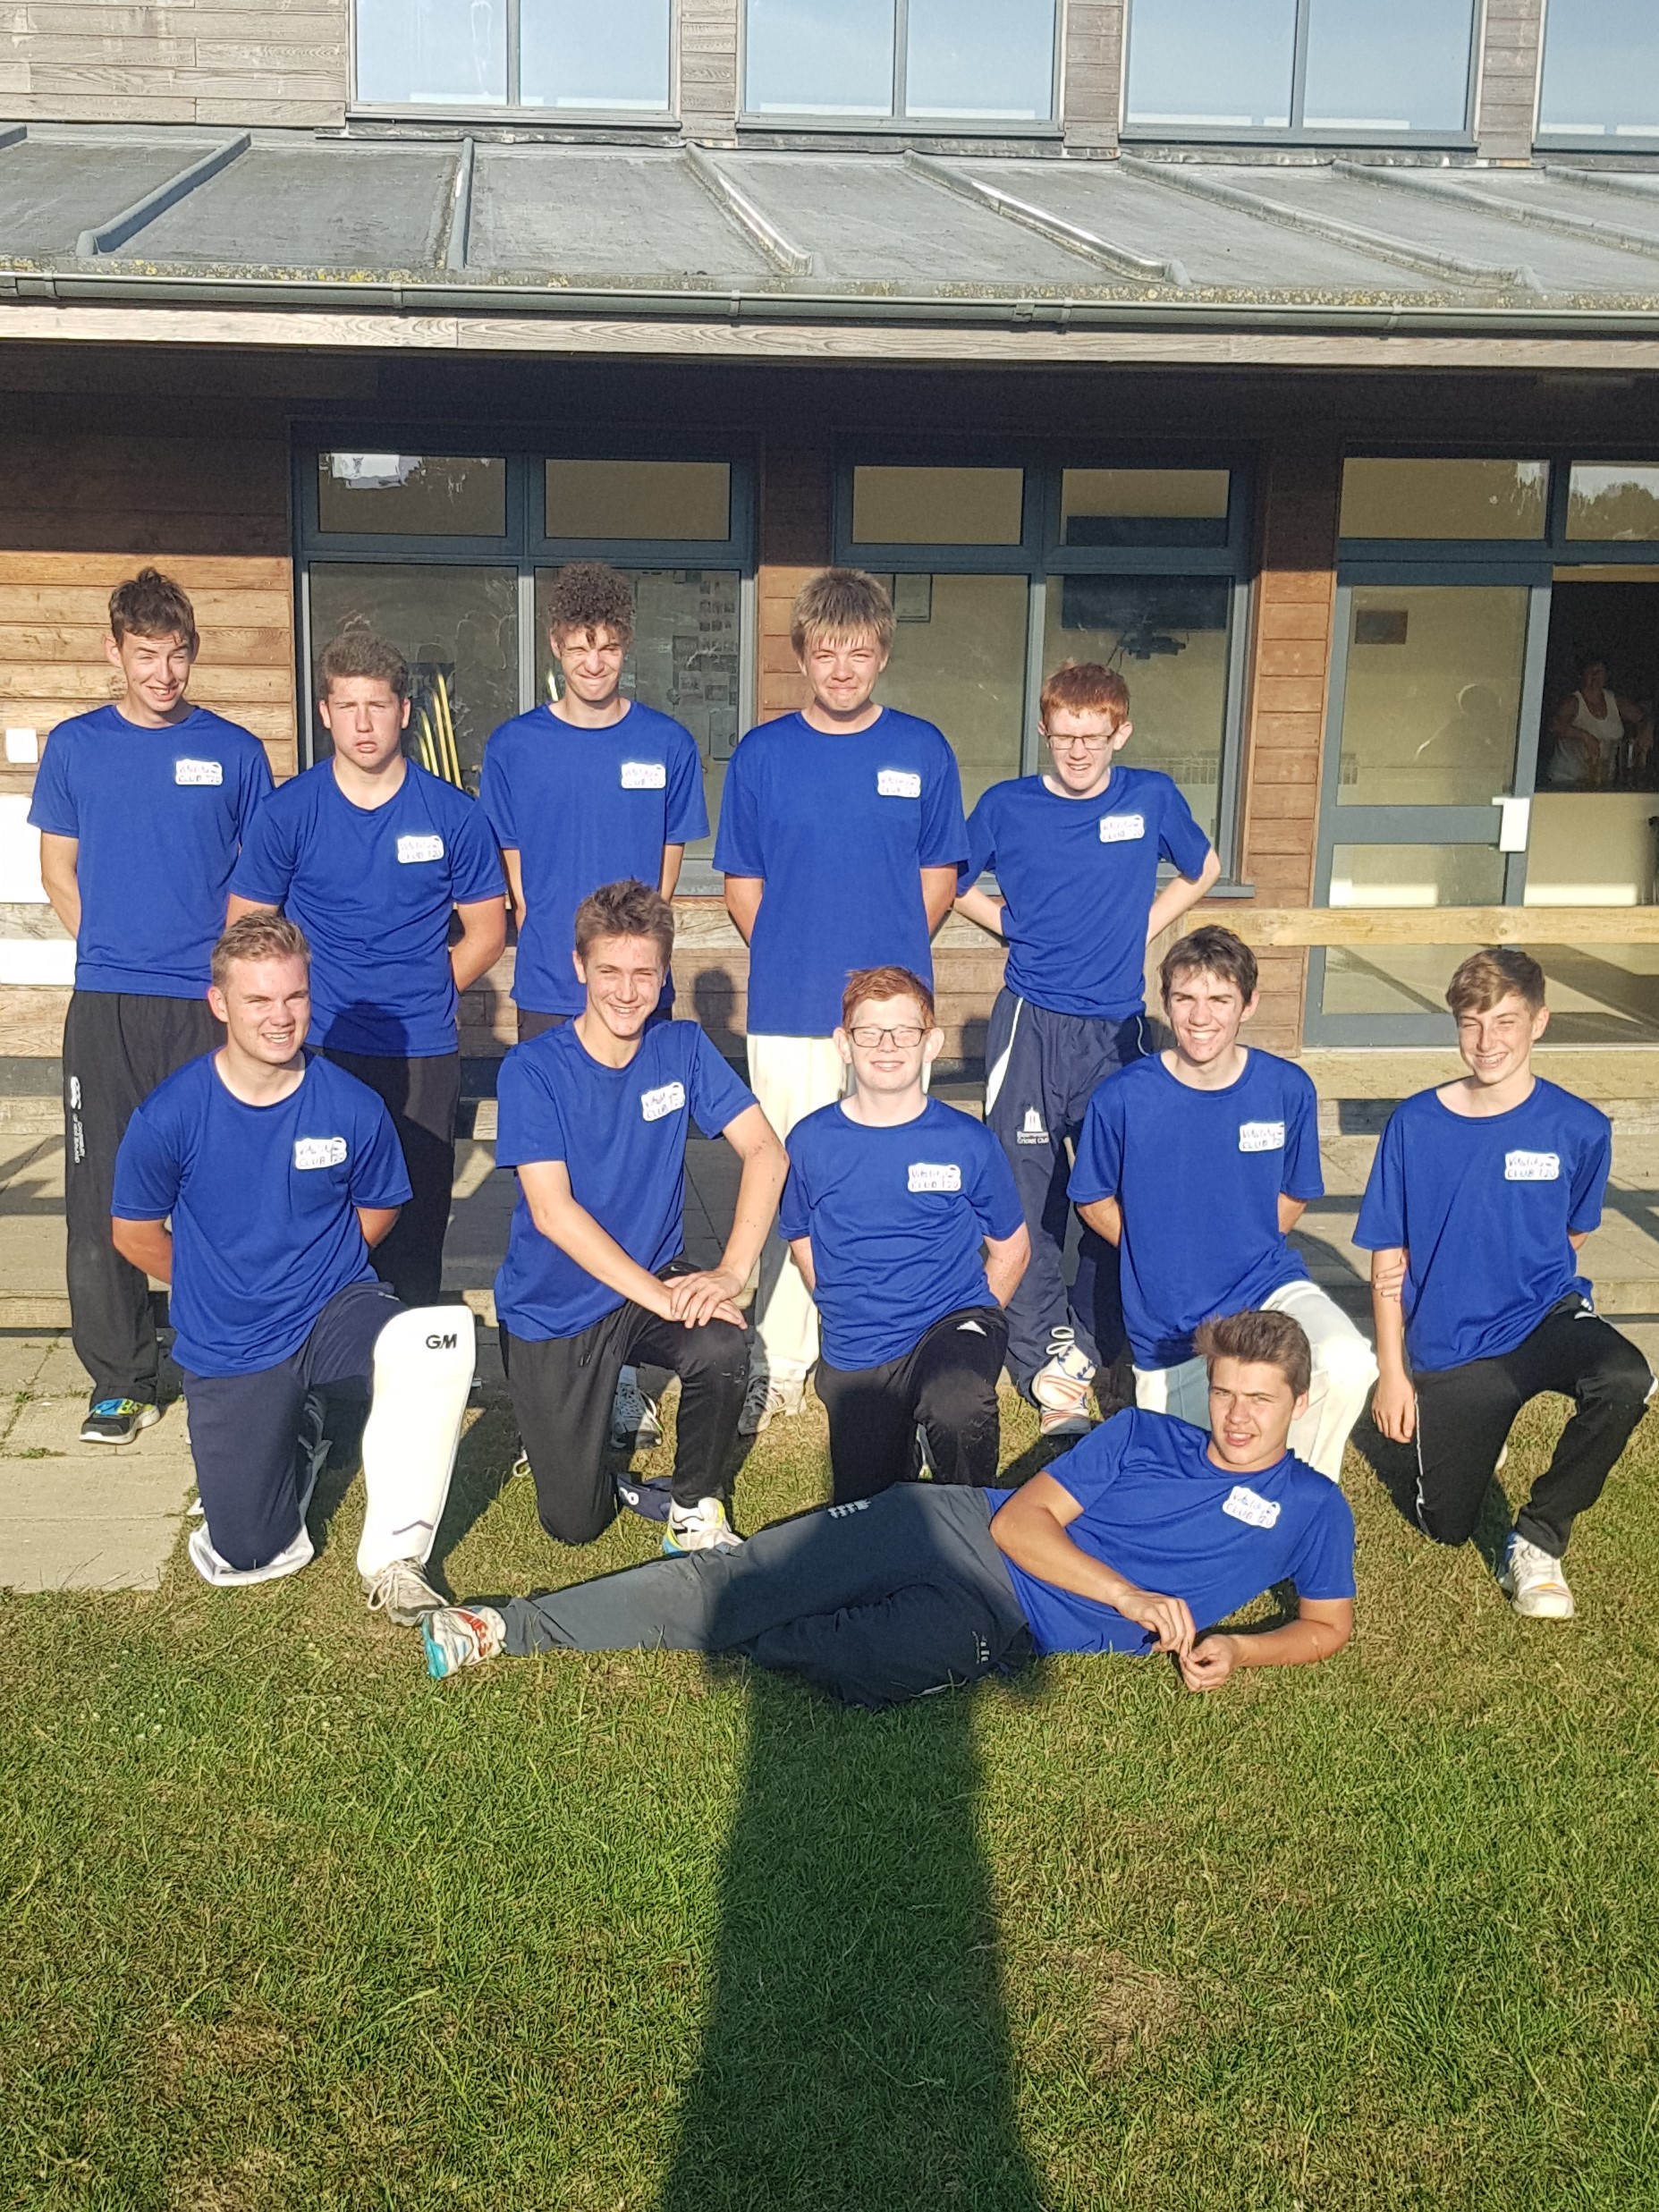 U19s team that played in the Twenty20 tournament at Beaminster on 22/07/18